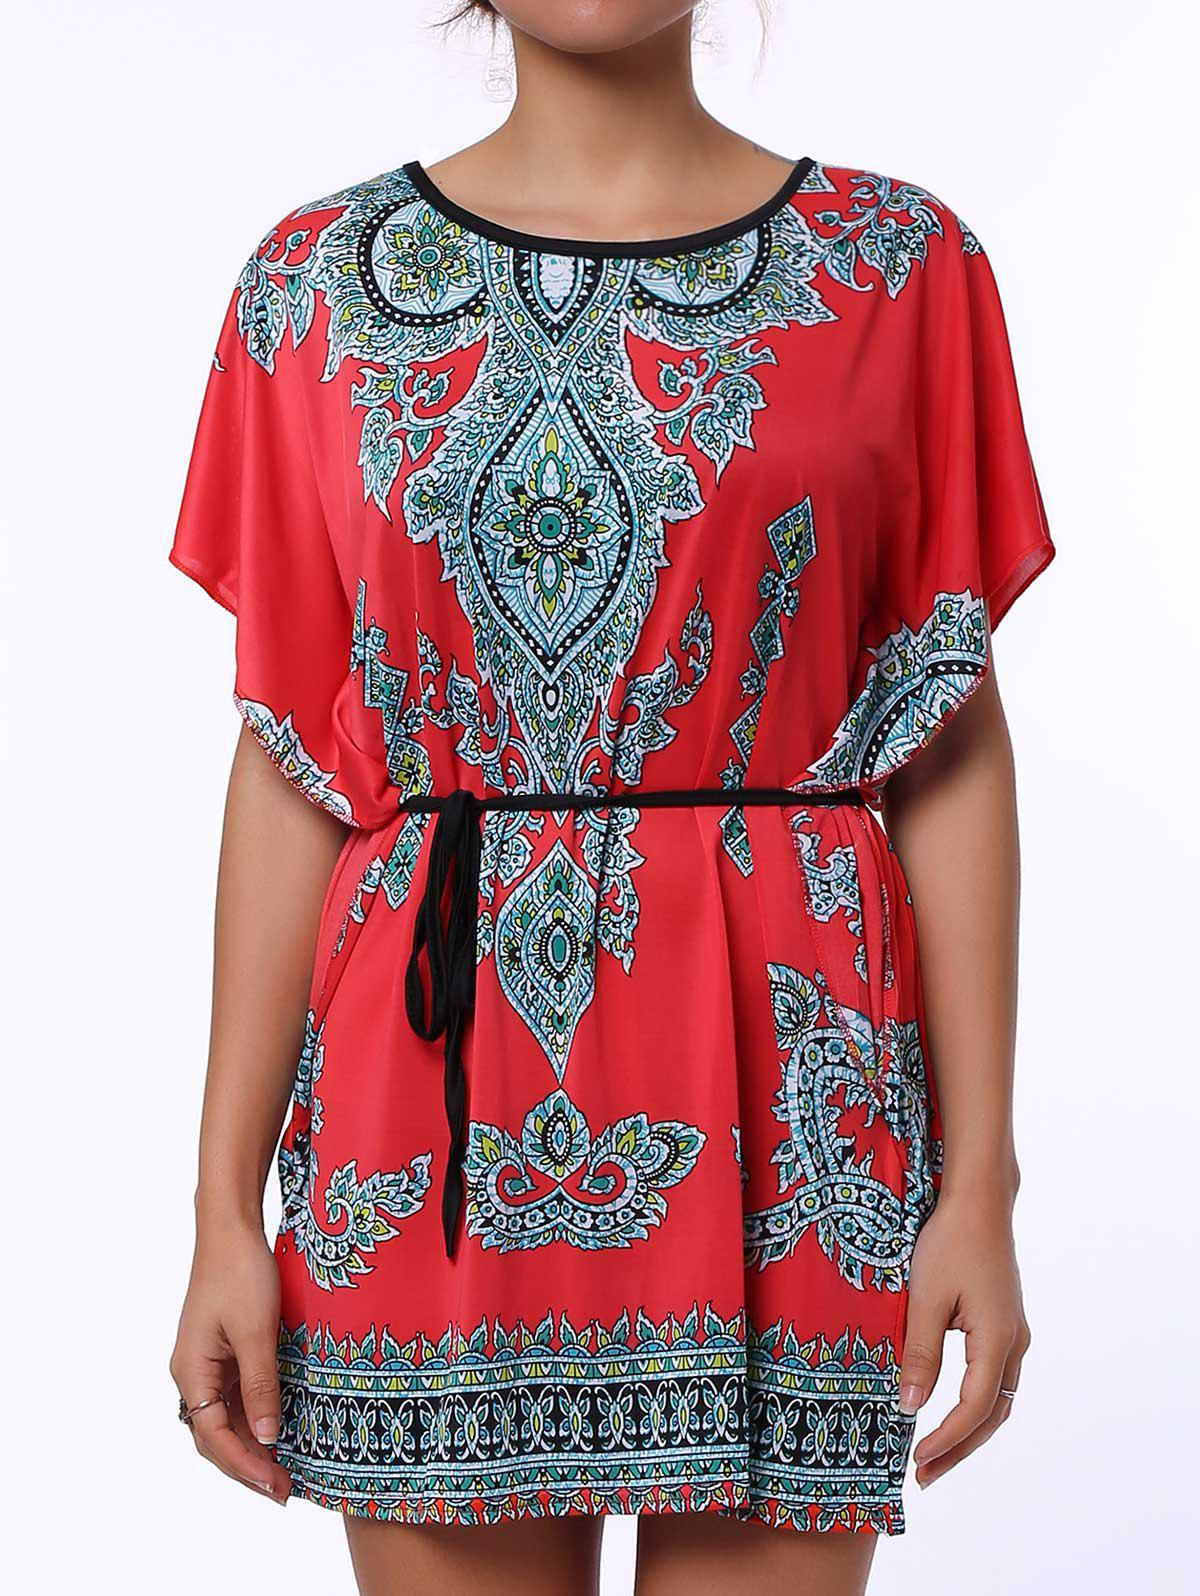 Scoop Neck Print Color Block Ethnic Style Short Sleeve T-Shirt For Women - RED L